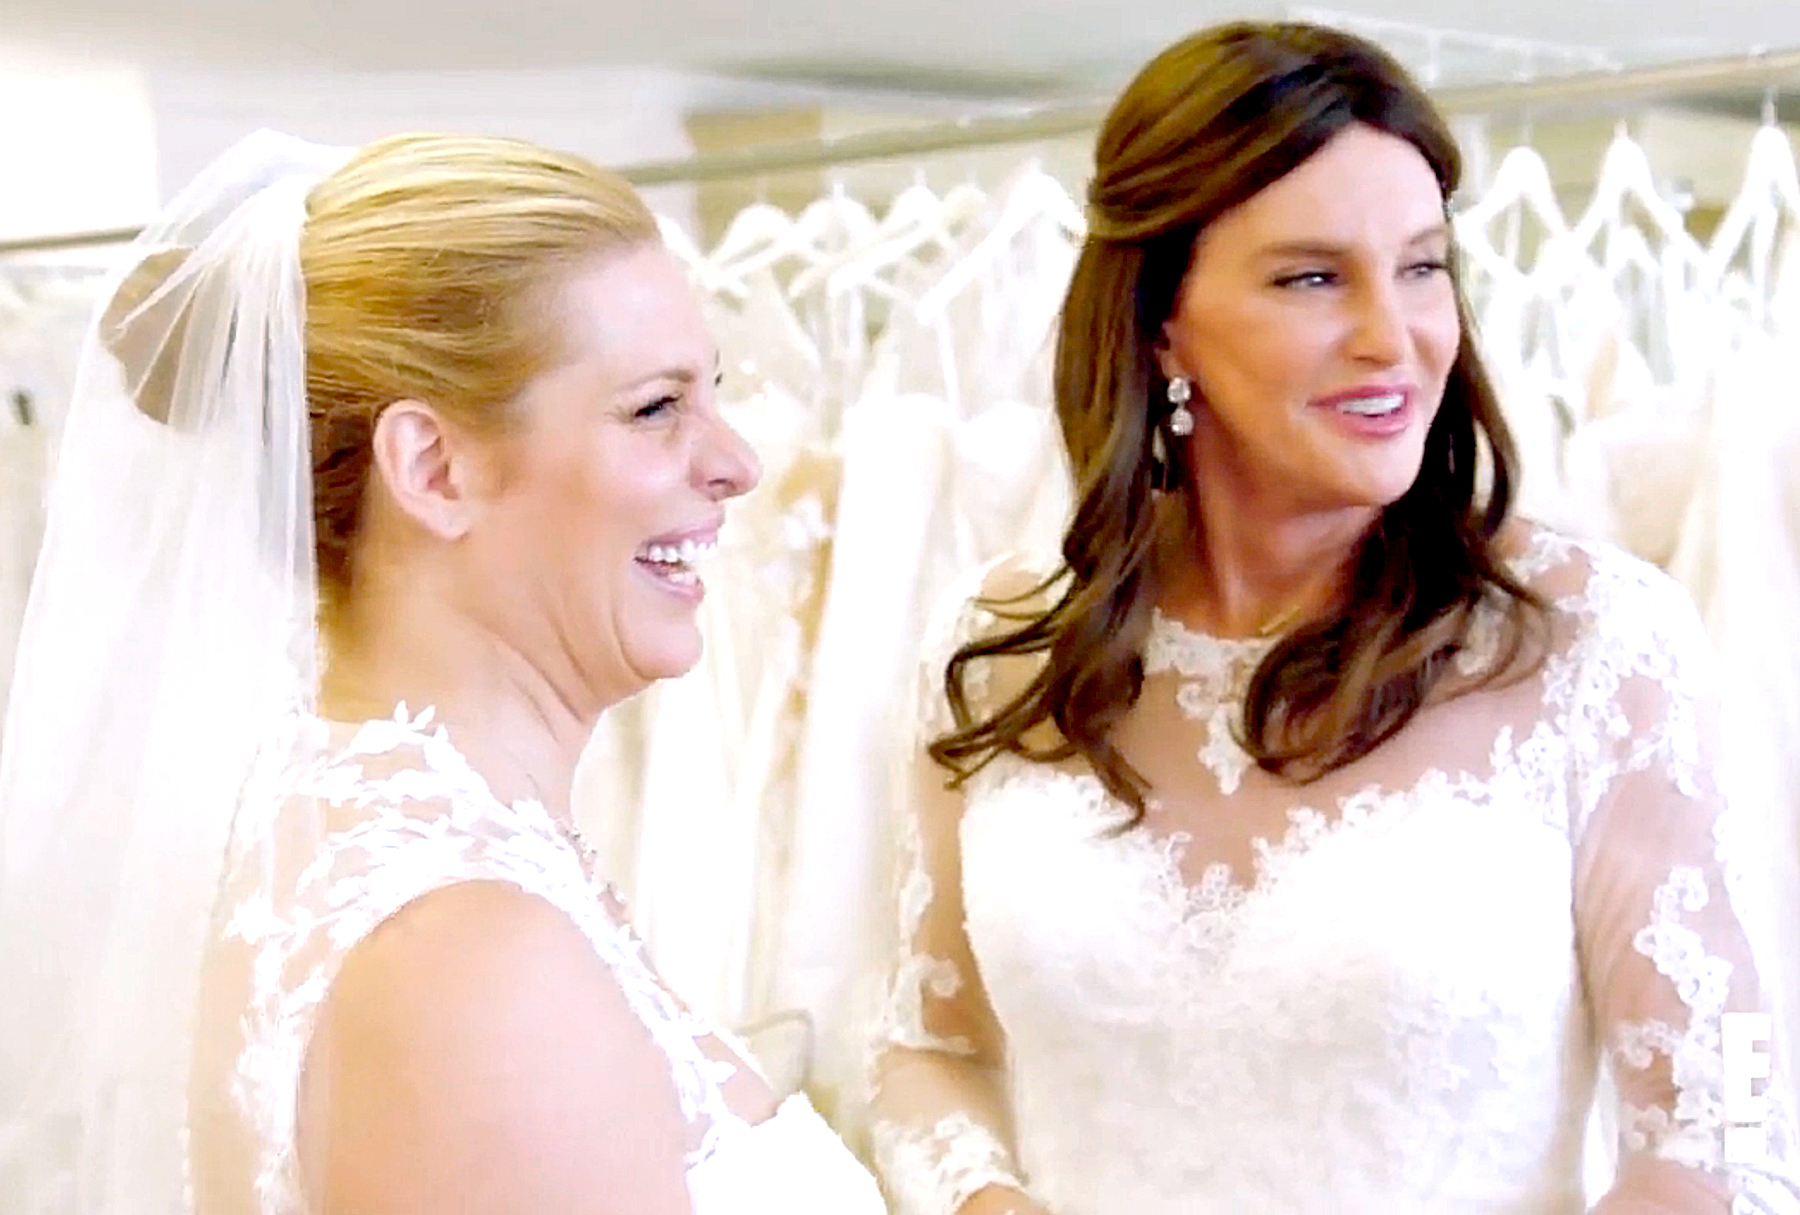 Candis Cayne and Caitlyn Jenner